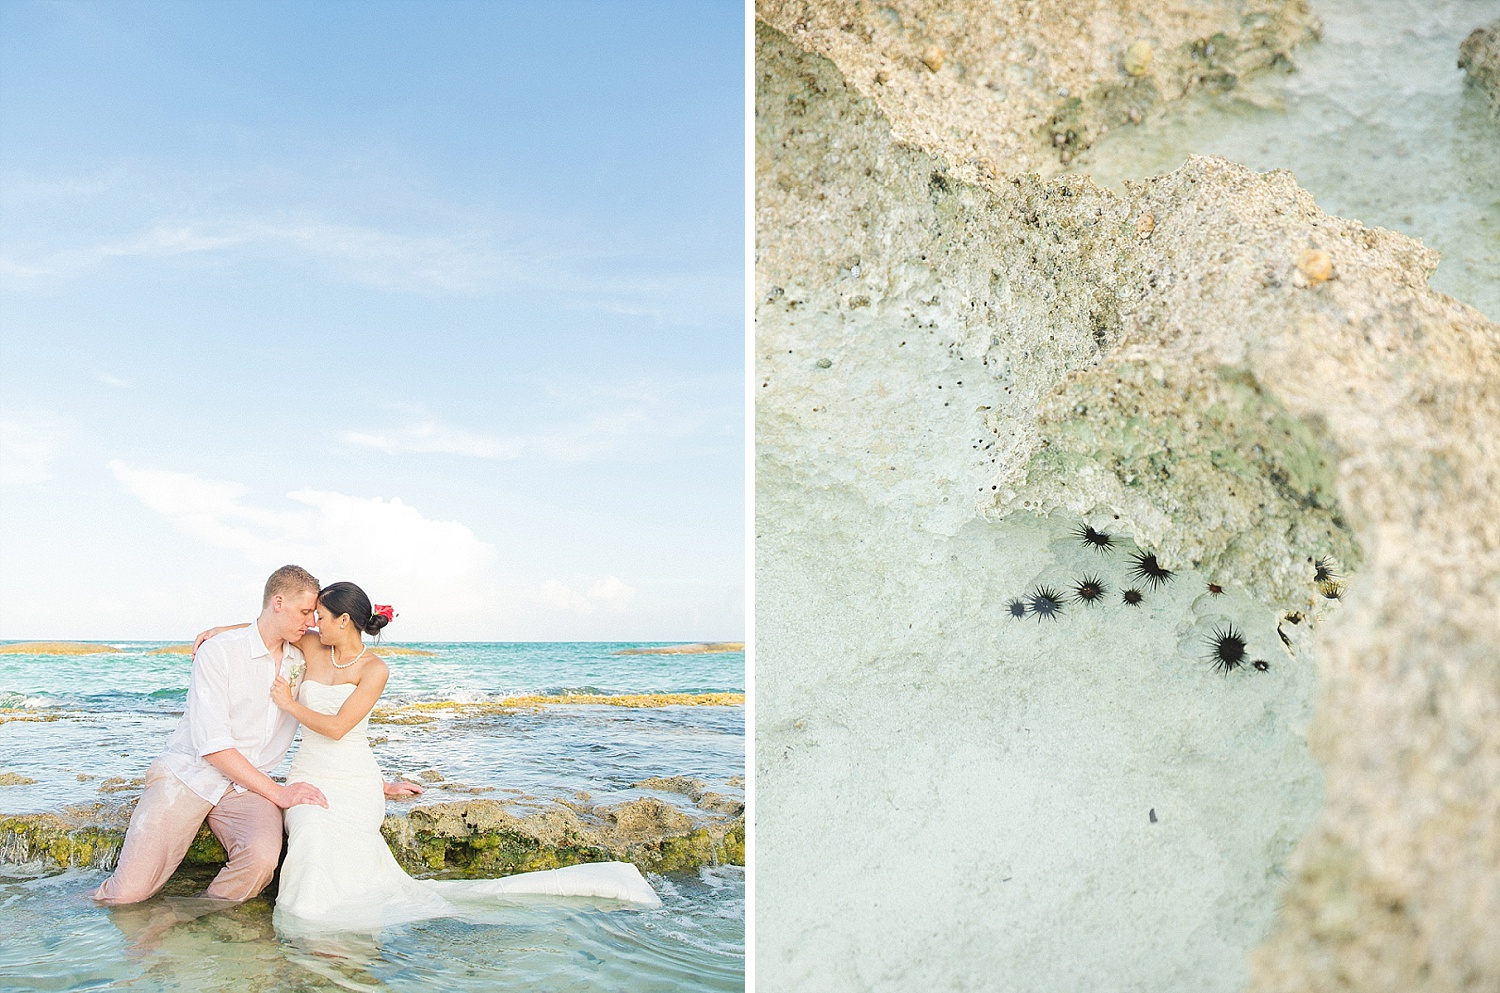 Riviera_Maya_El_Dorado_Mexico_wedding_Dallas_destination_photographer.jpg